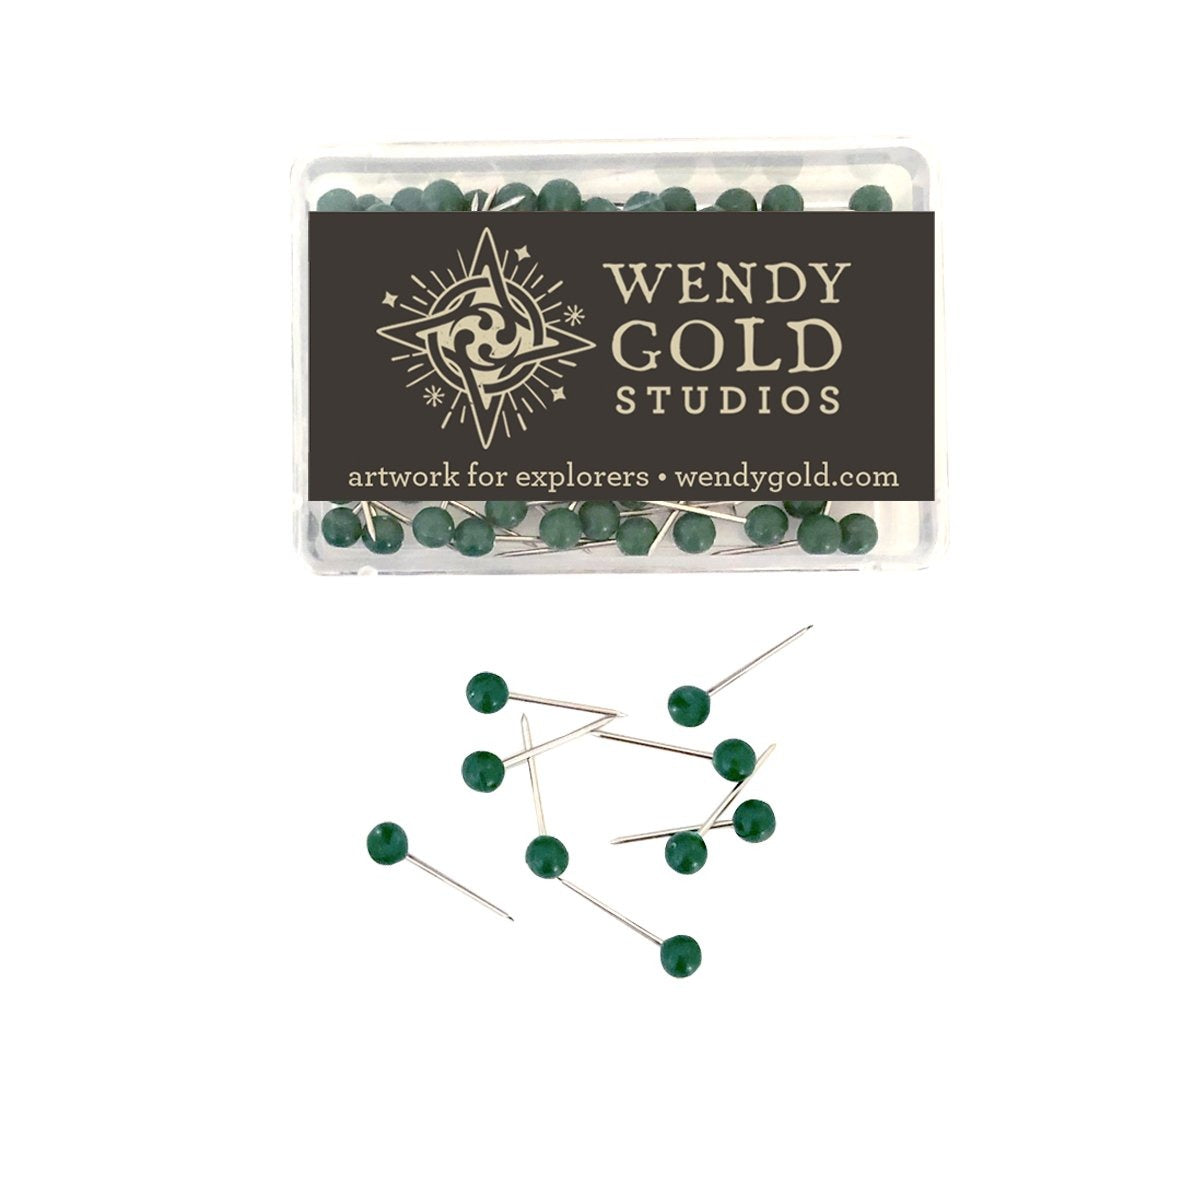 Dark Green Globe Pins by Wendy Gold Studios